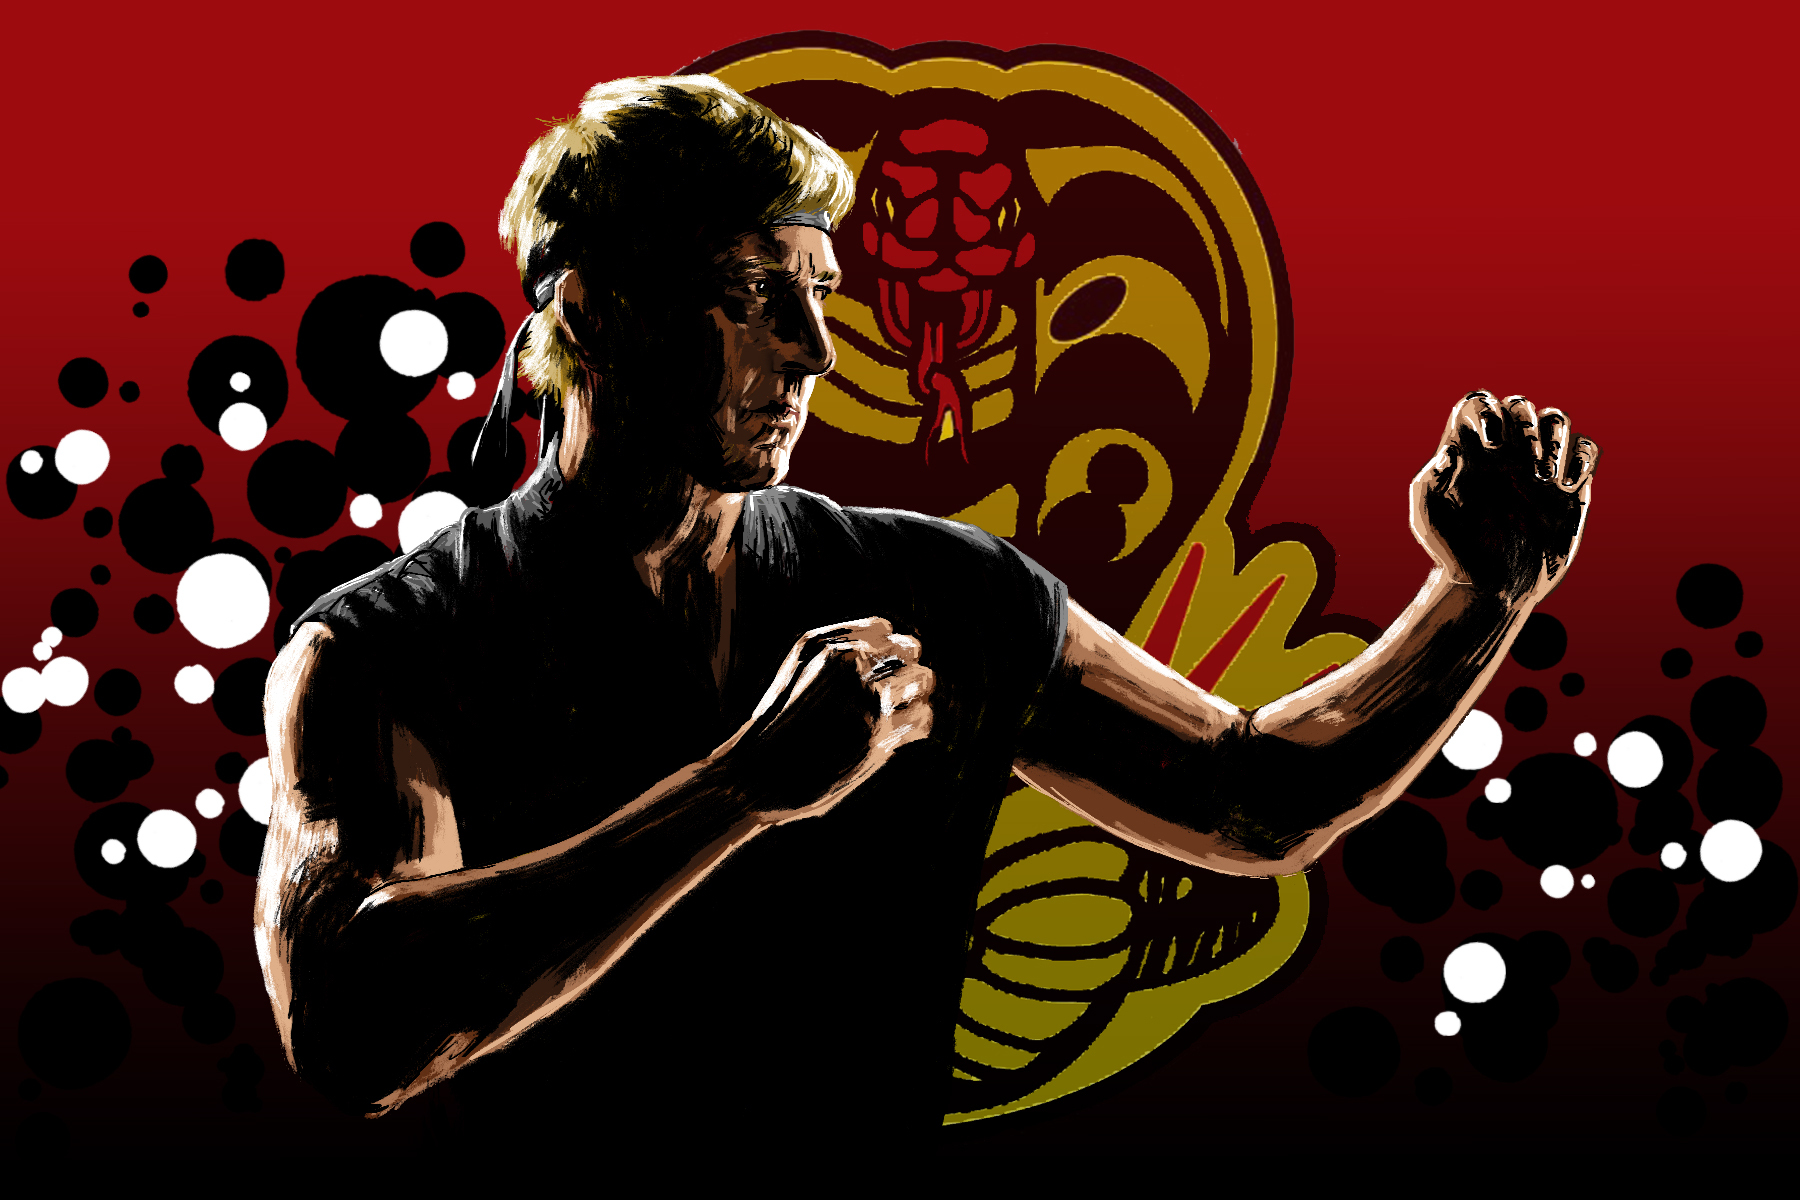 Illustration by Marcus Escobar for an article on Cobra Kai